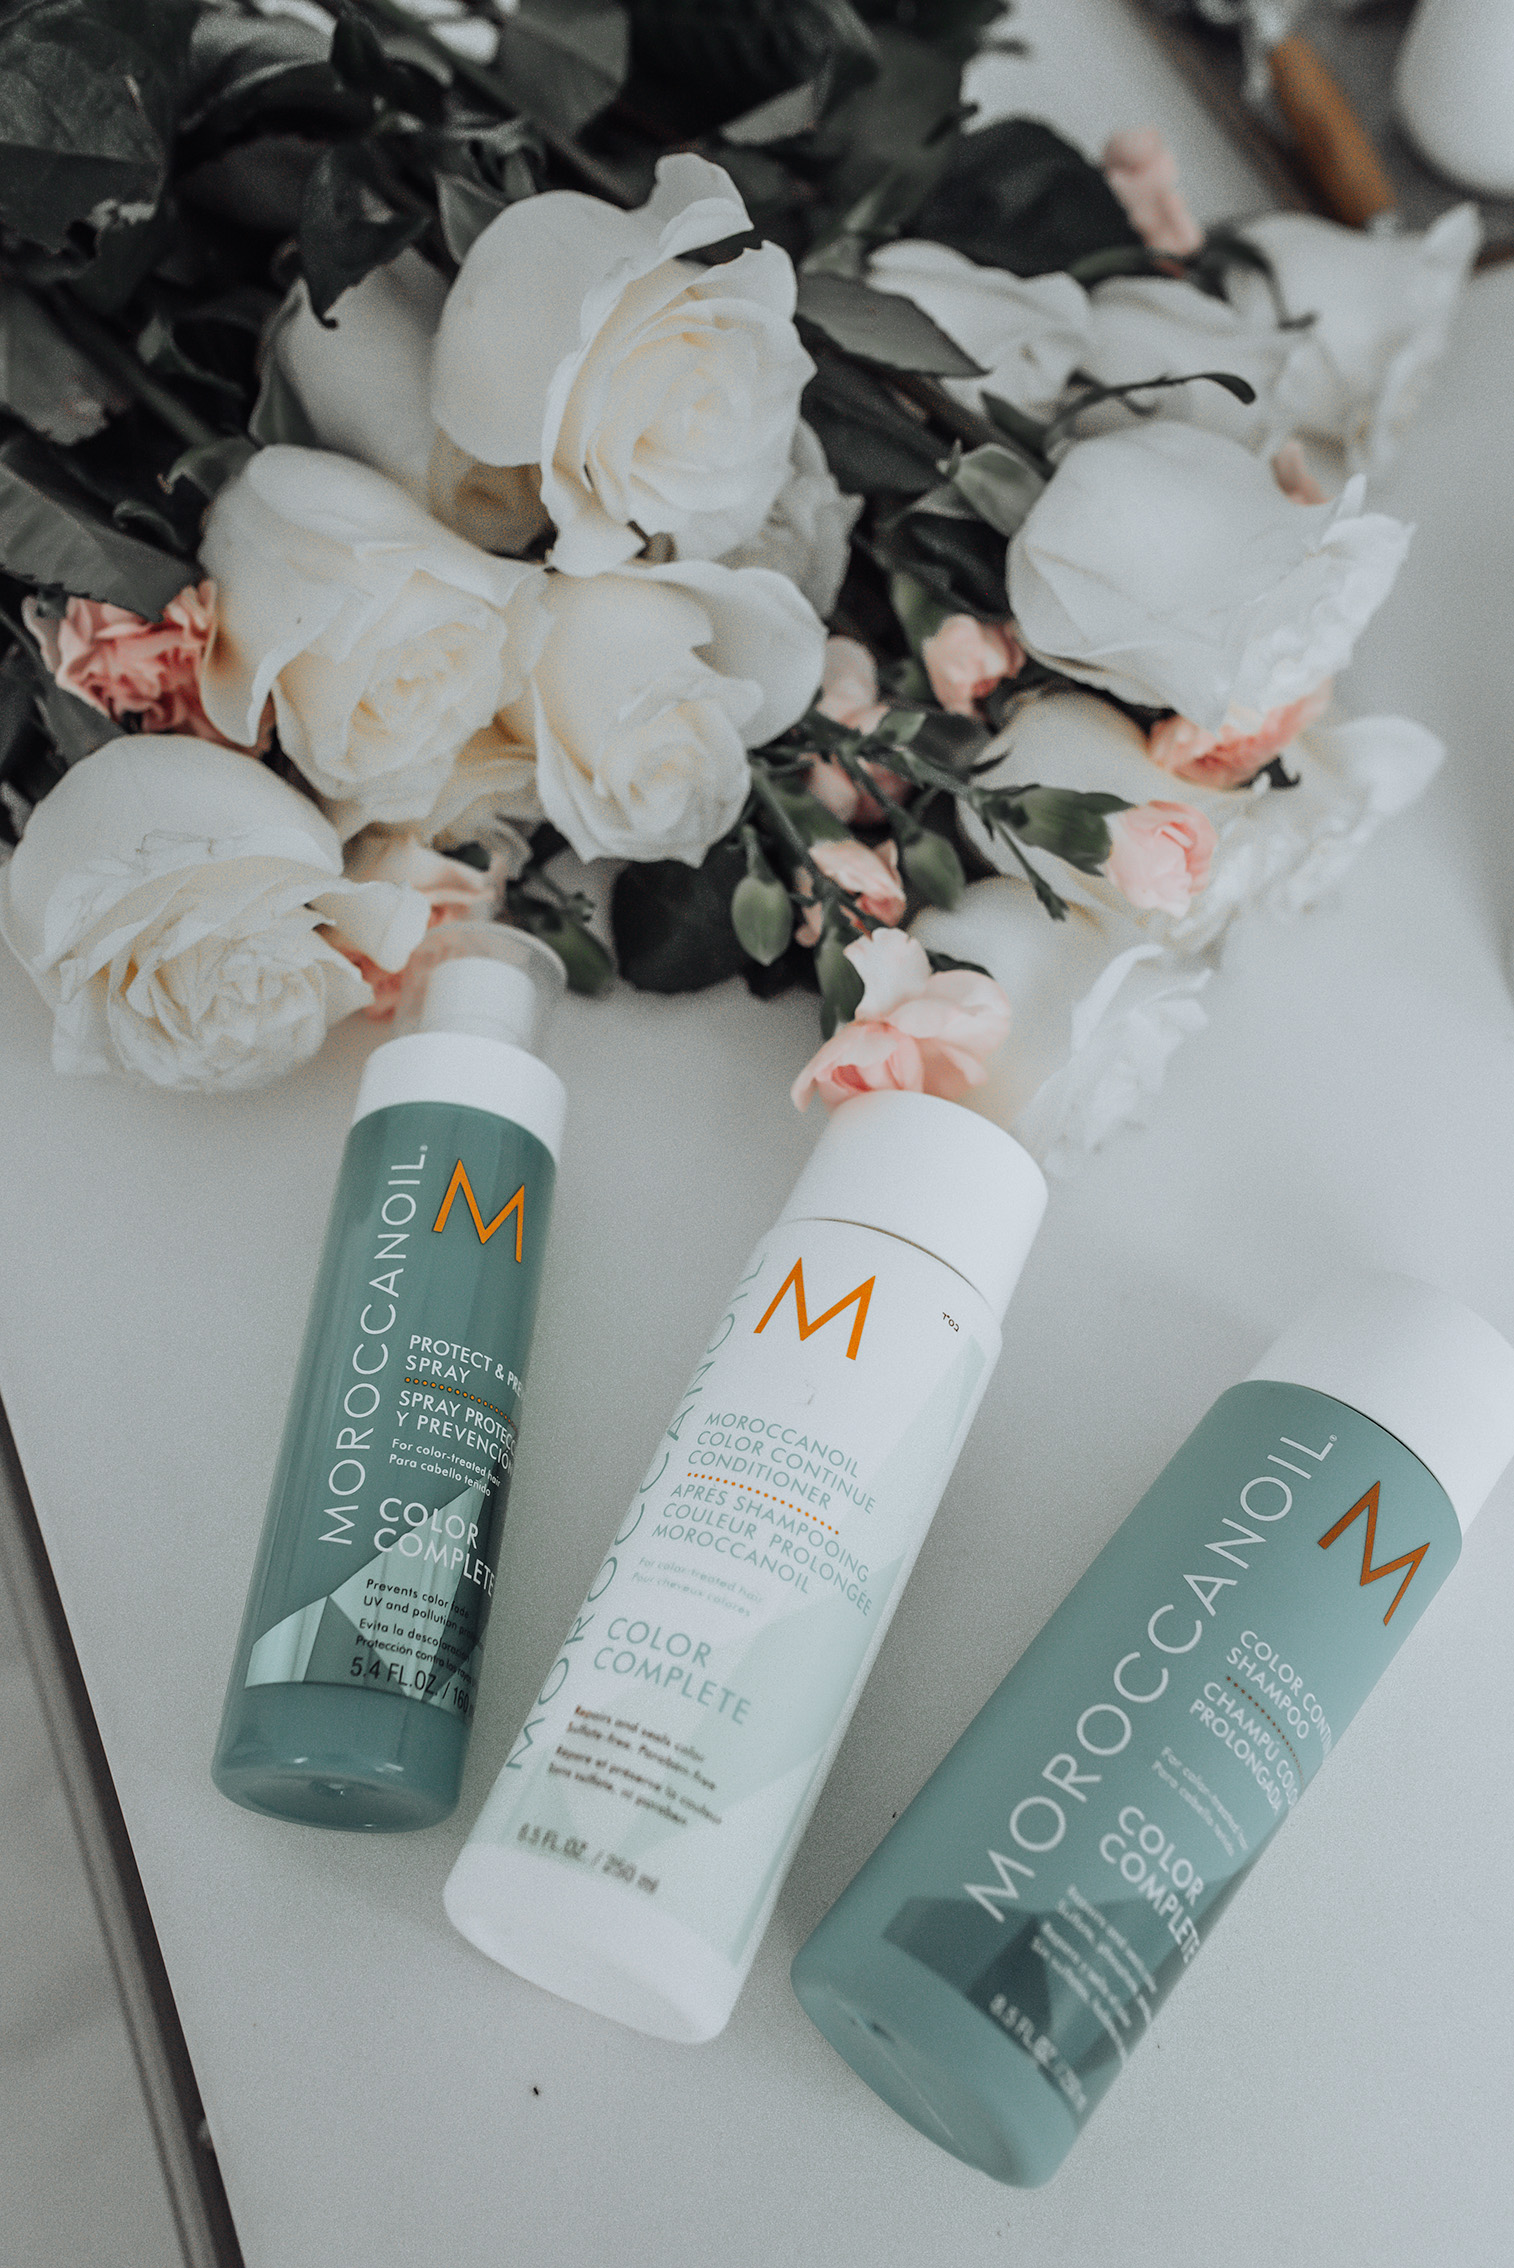 long lasting hair color | Color Continue Shampoo | Color Continue Conditioner | Protect & Prevent Spray